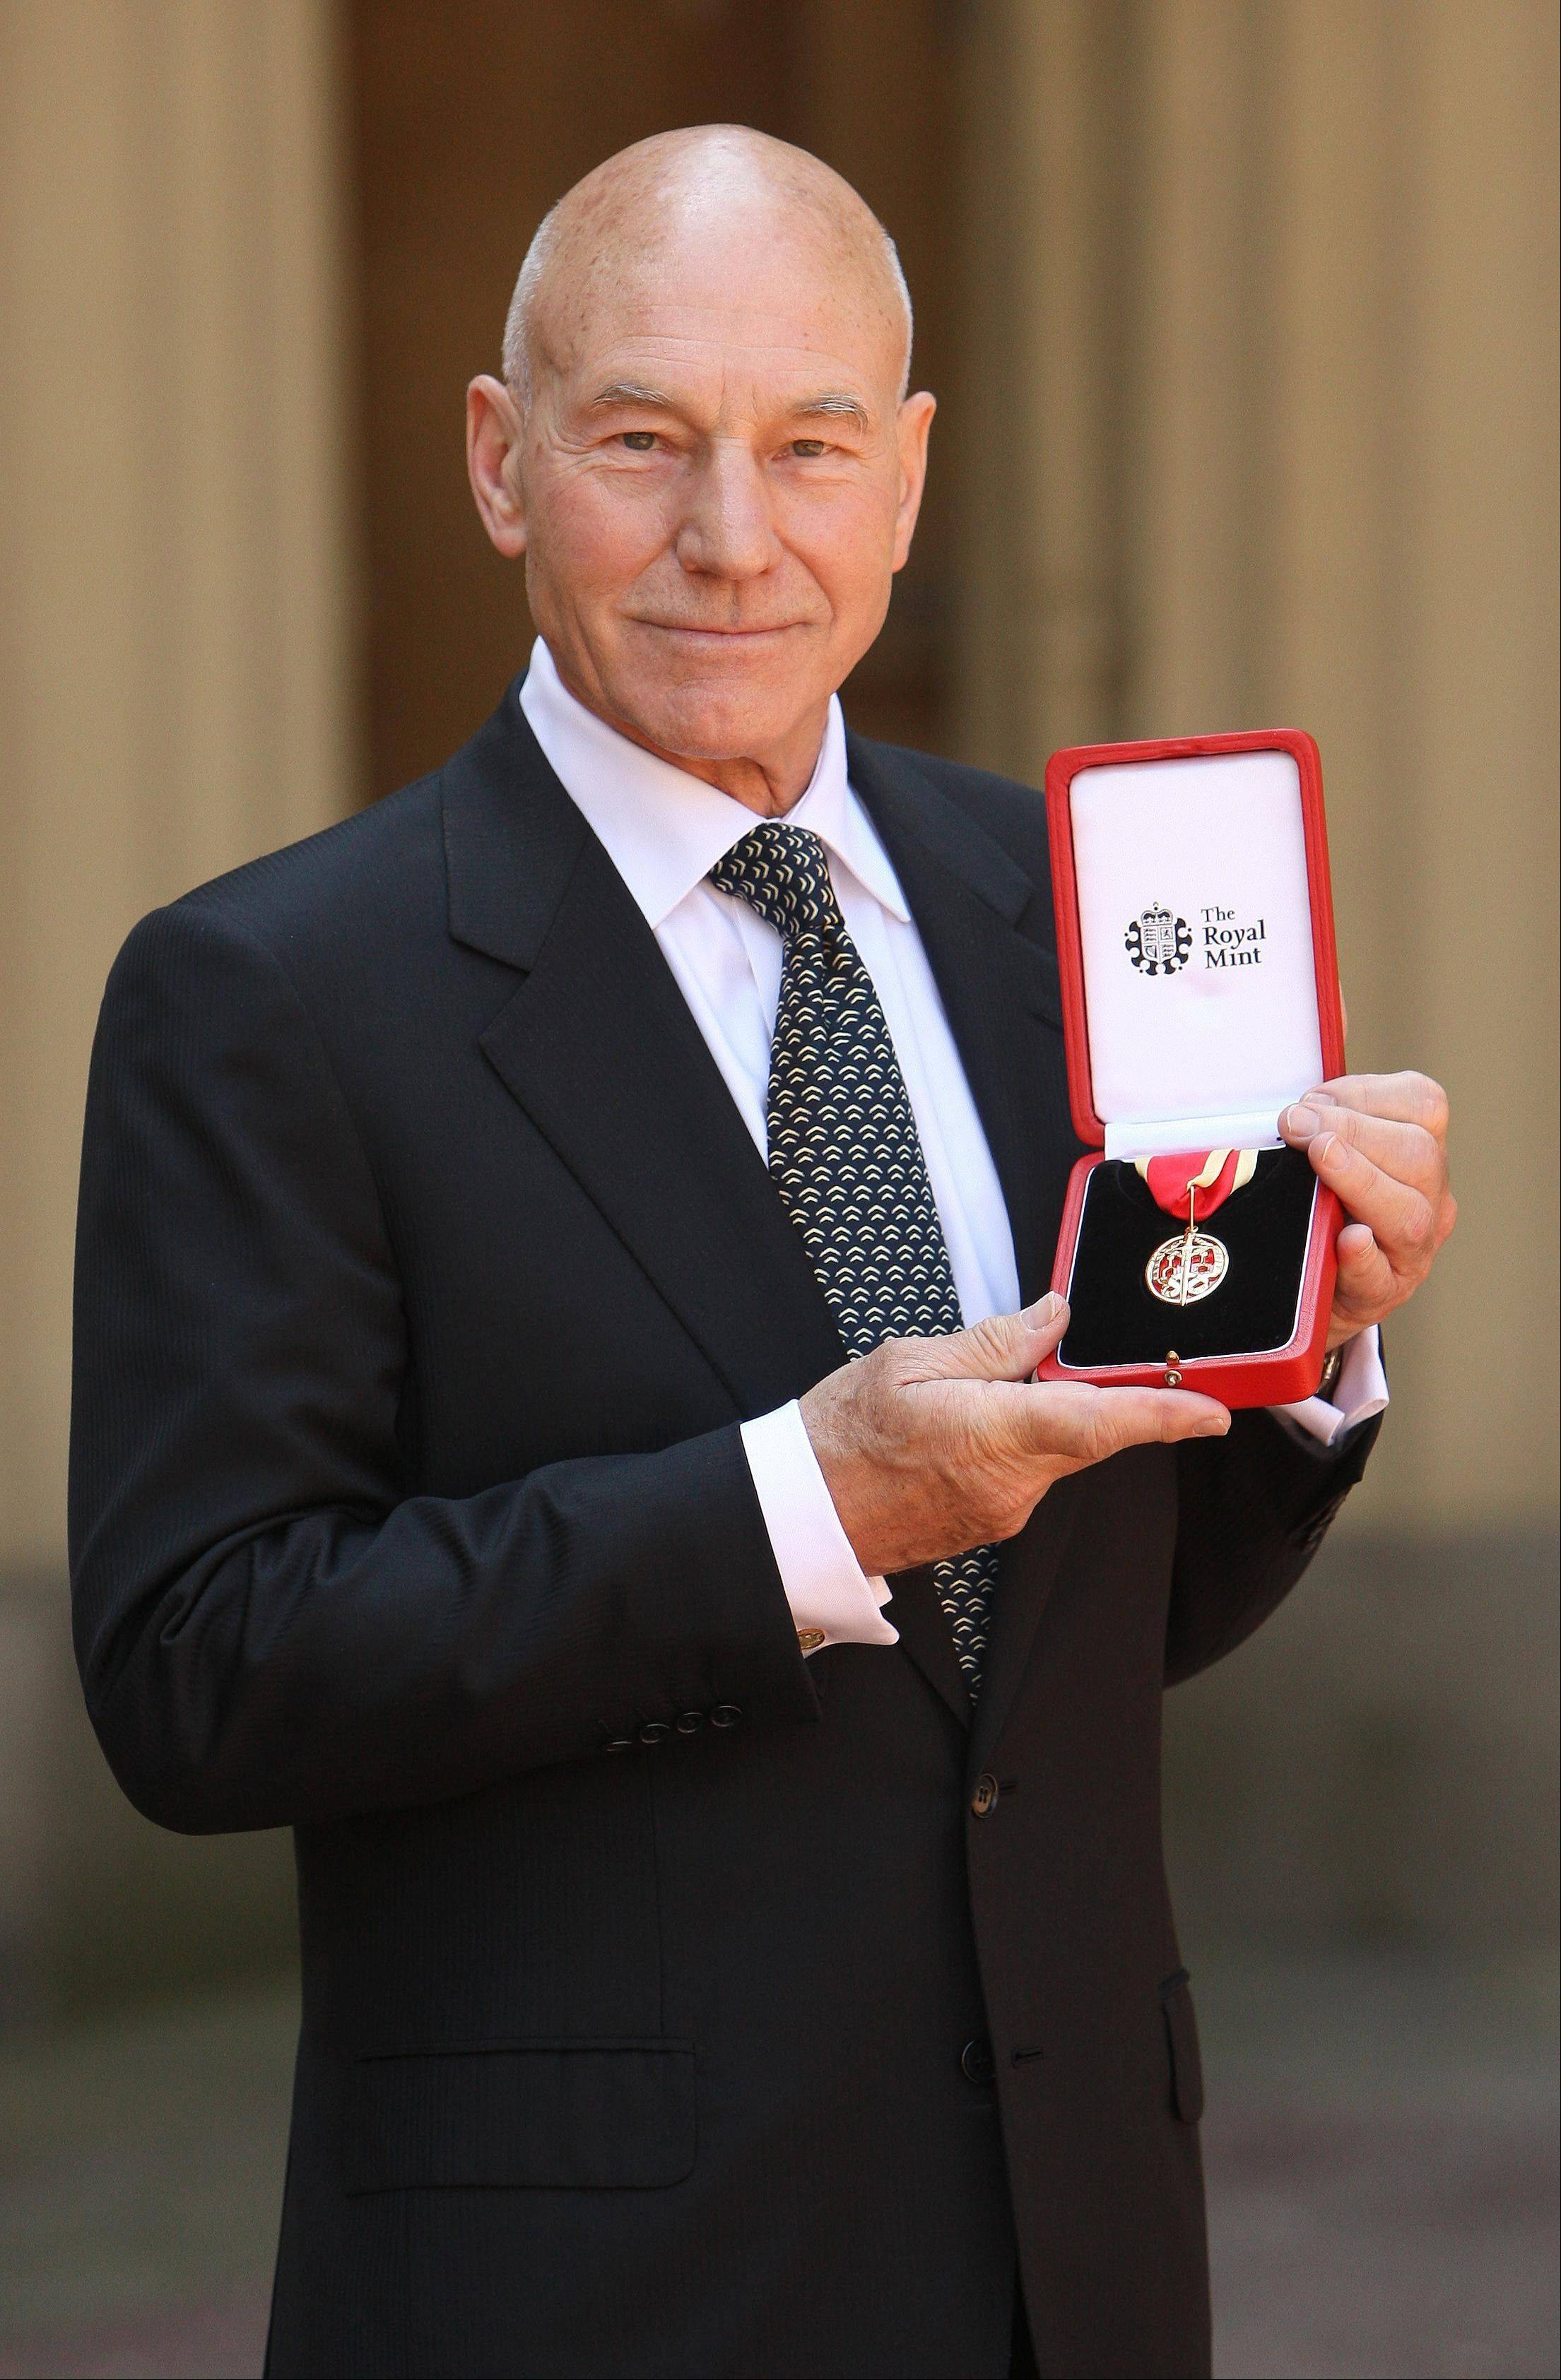 Actor Sir Patrick Stewart, posing with the insignia of his knighthood in 2010, will be a co-host for �The Second City Guide to the Opera� at the Lyric Opera of Chicago on Jan. 5.